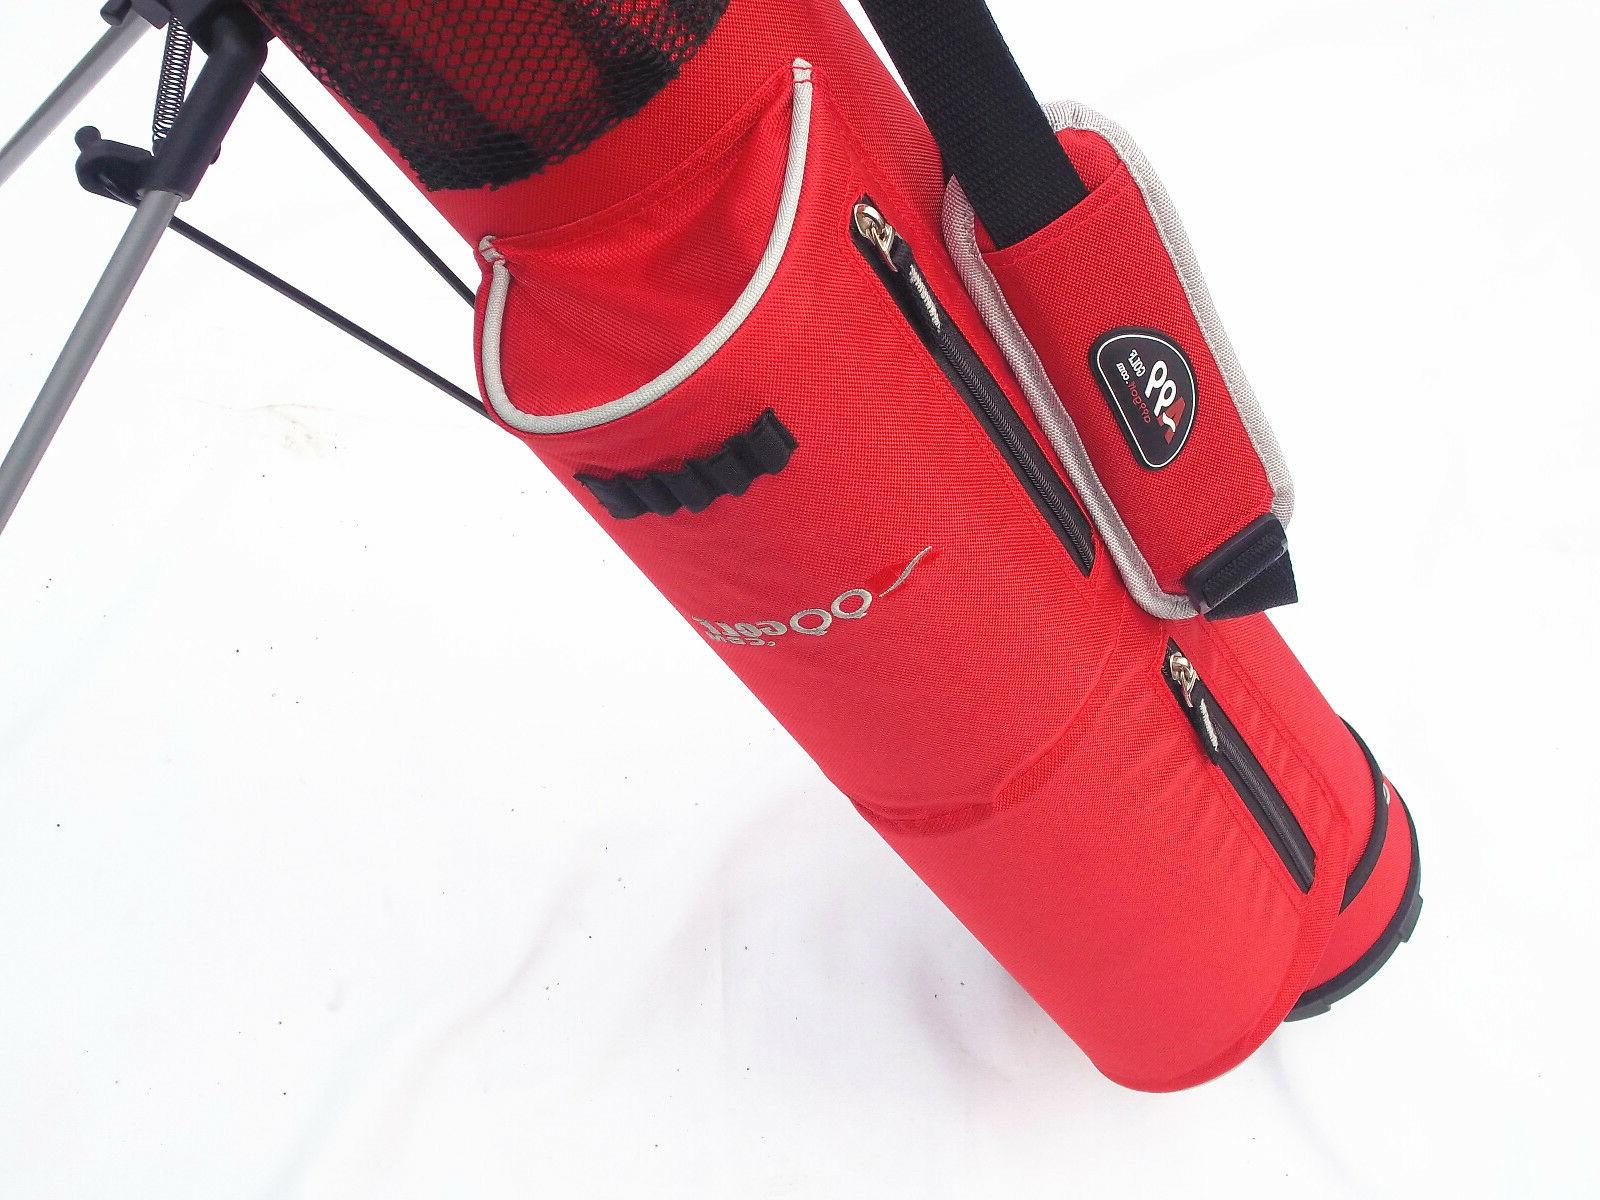 C4 Golf Sunday Carry Removable Top stand